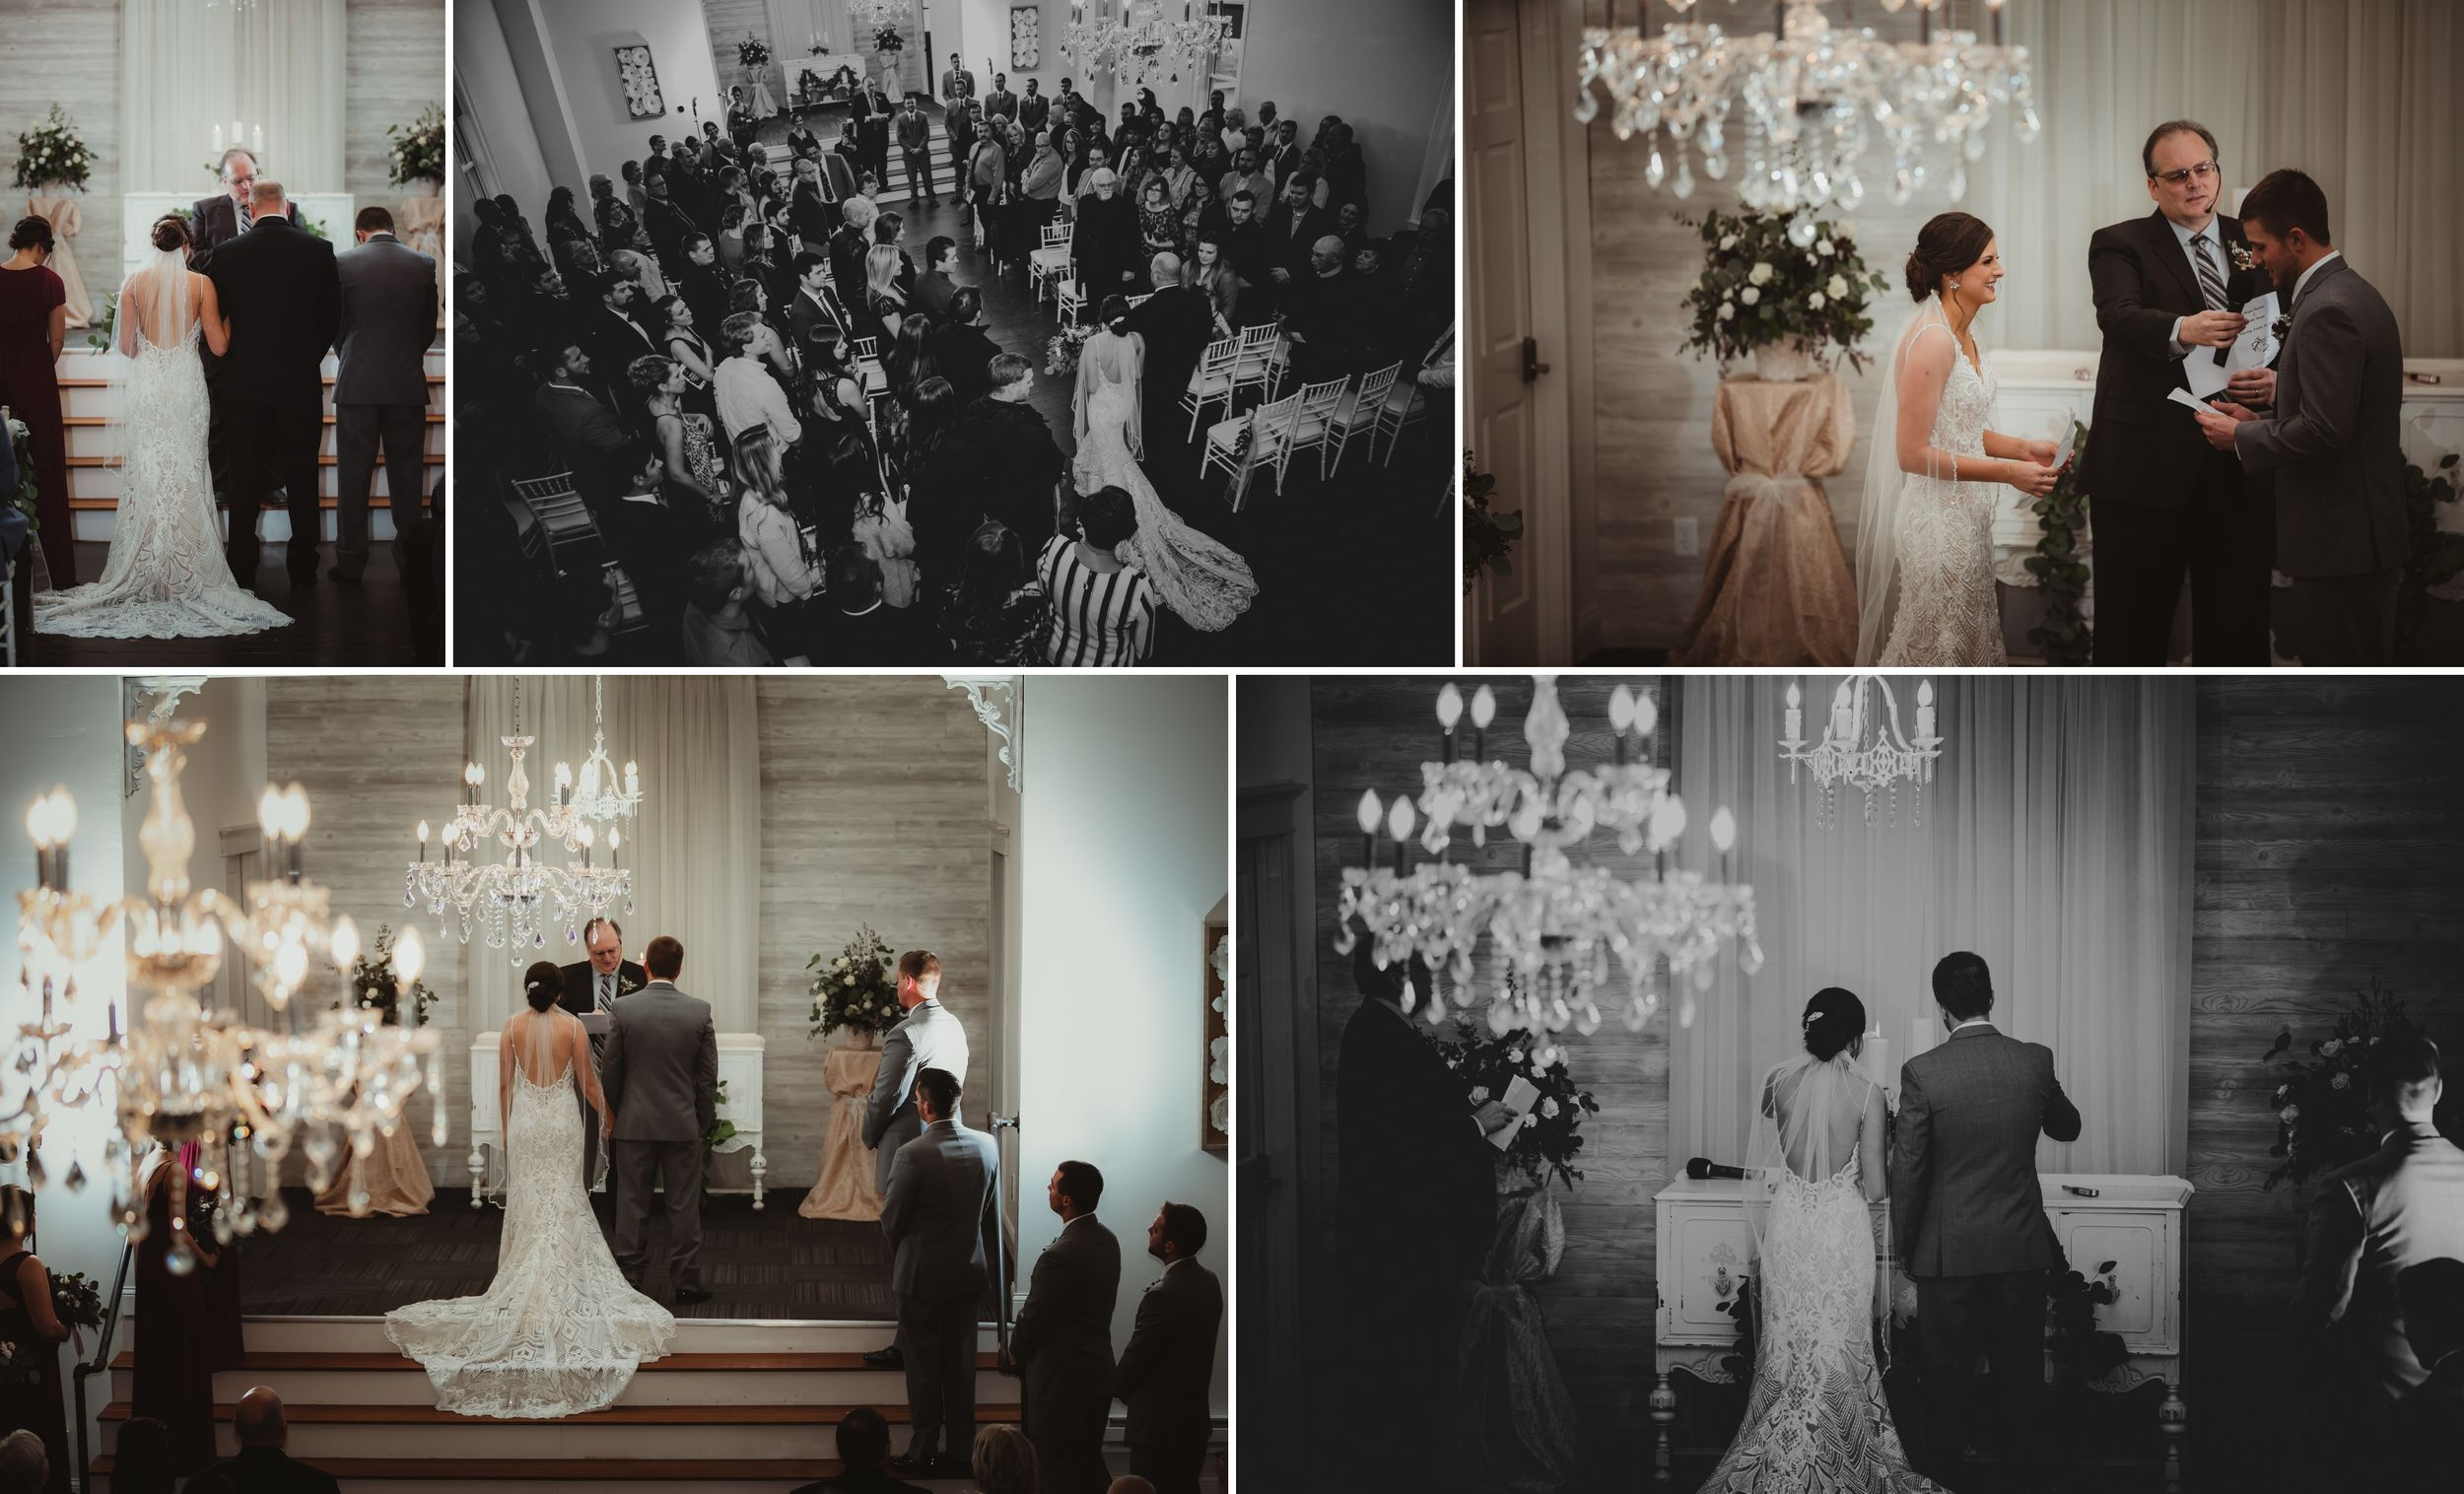 Collage of various images of the ceremony. The bride and groom stand on a stage and the room is full of chandeliers.